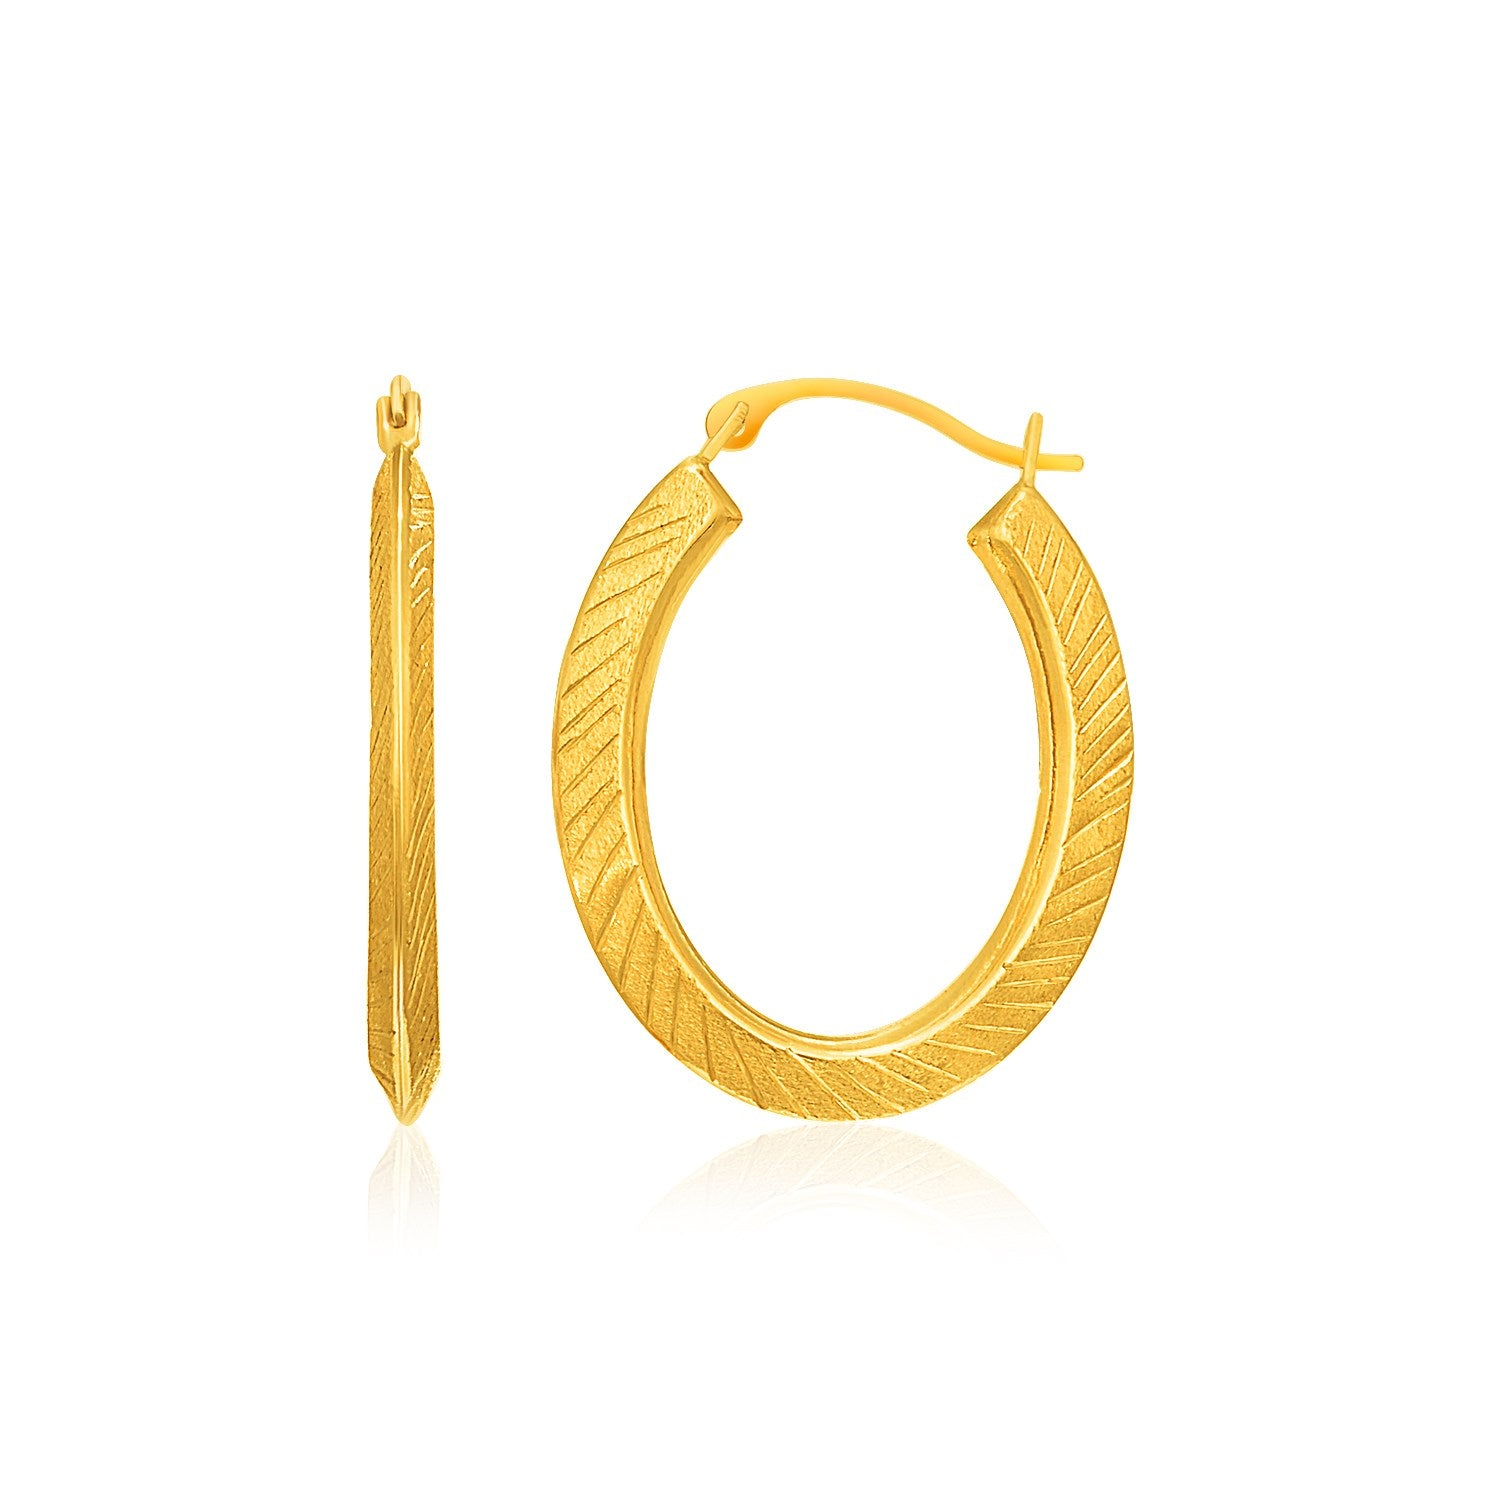 10k Yellow Gold Oval Line Texture Hoop Earrings